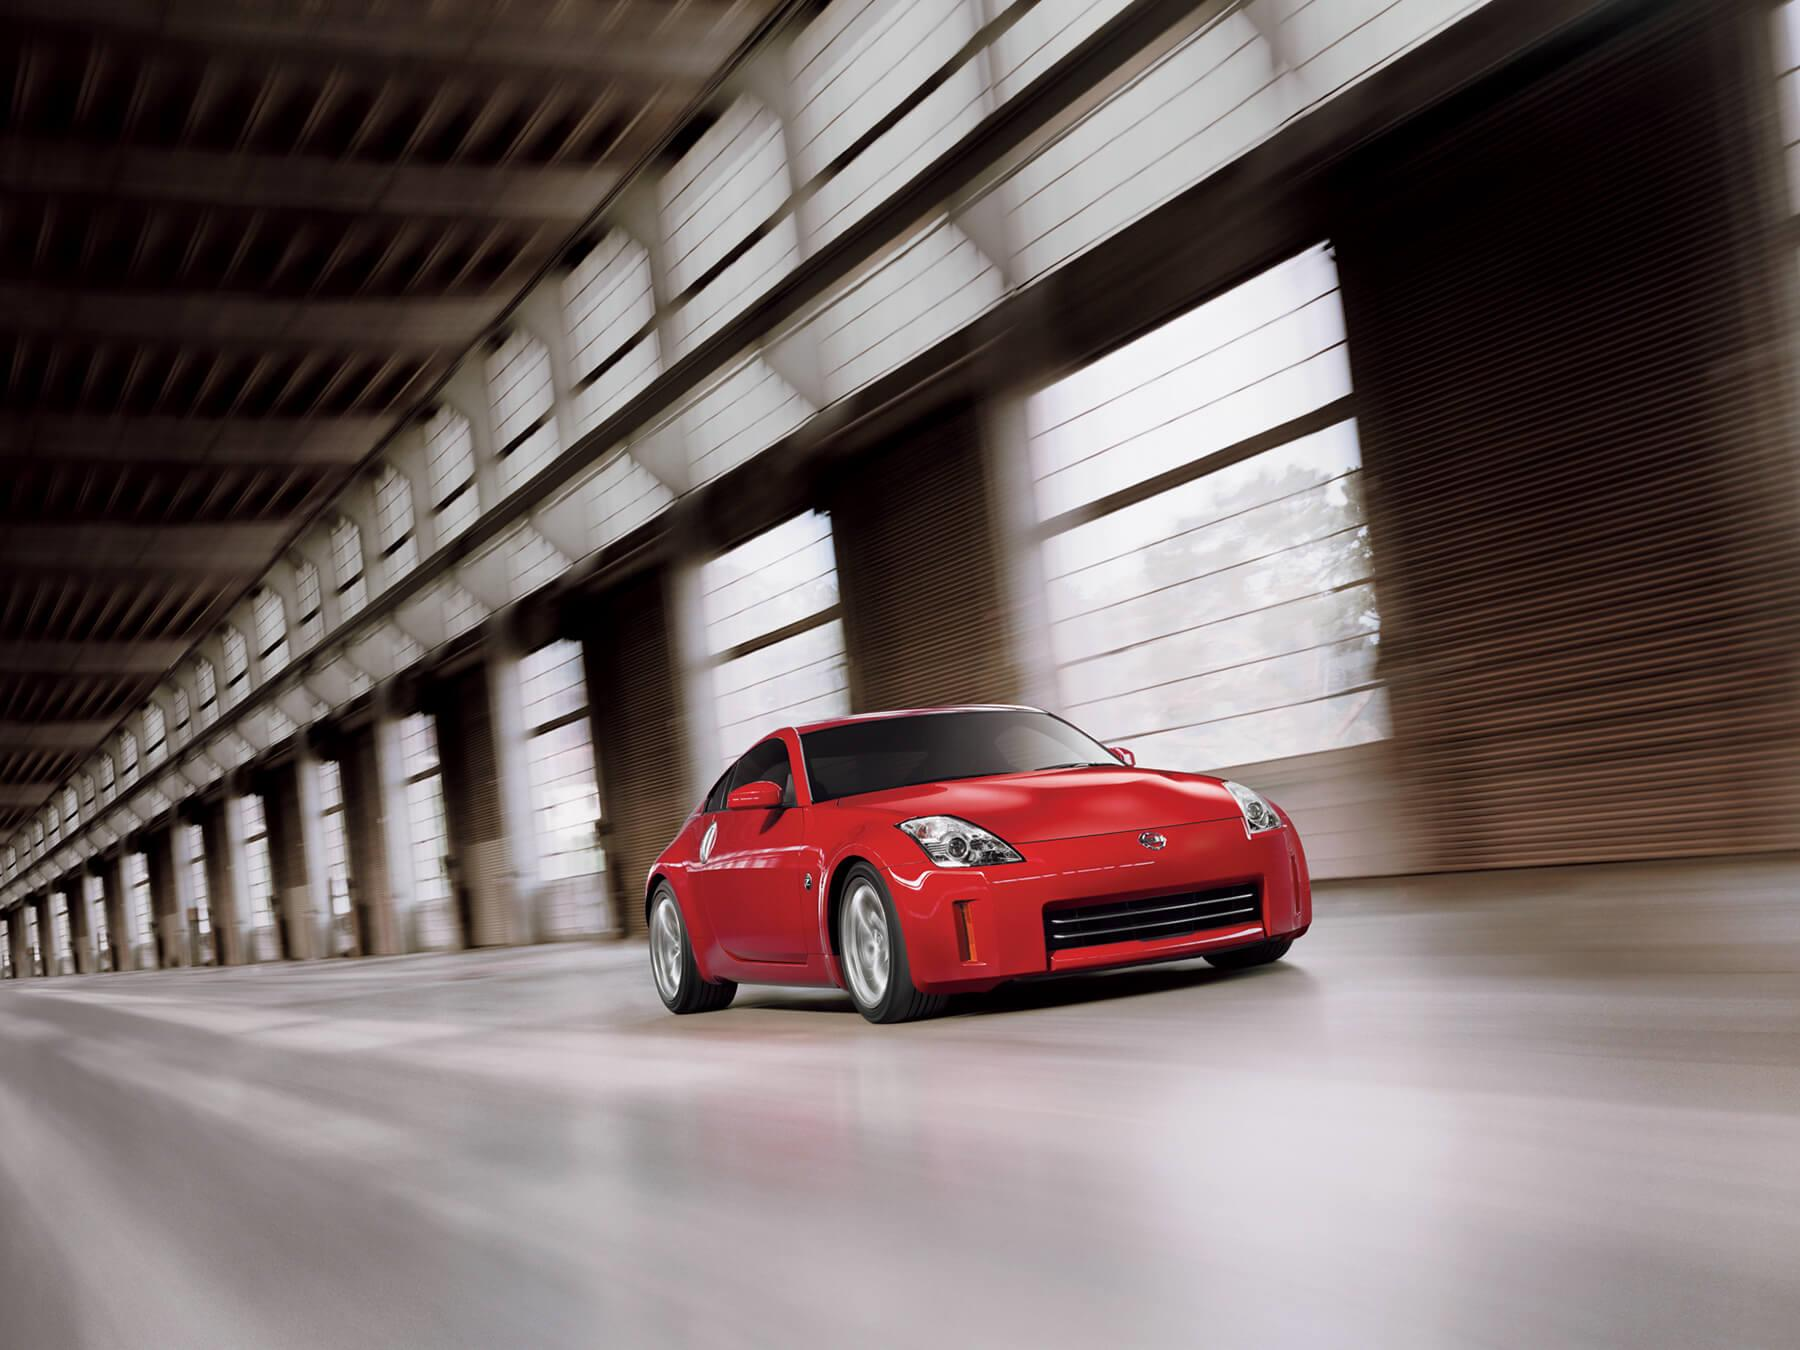 Red Nissan Z driving